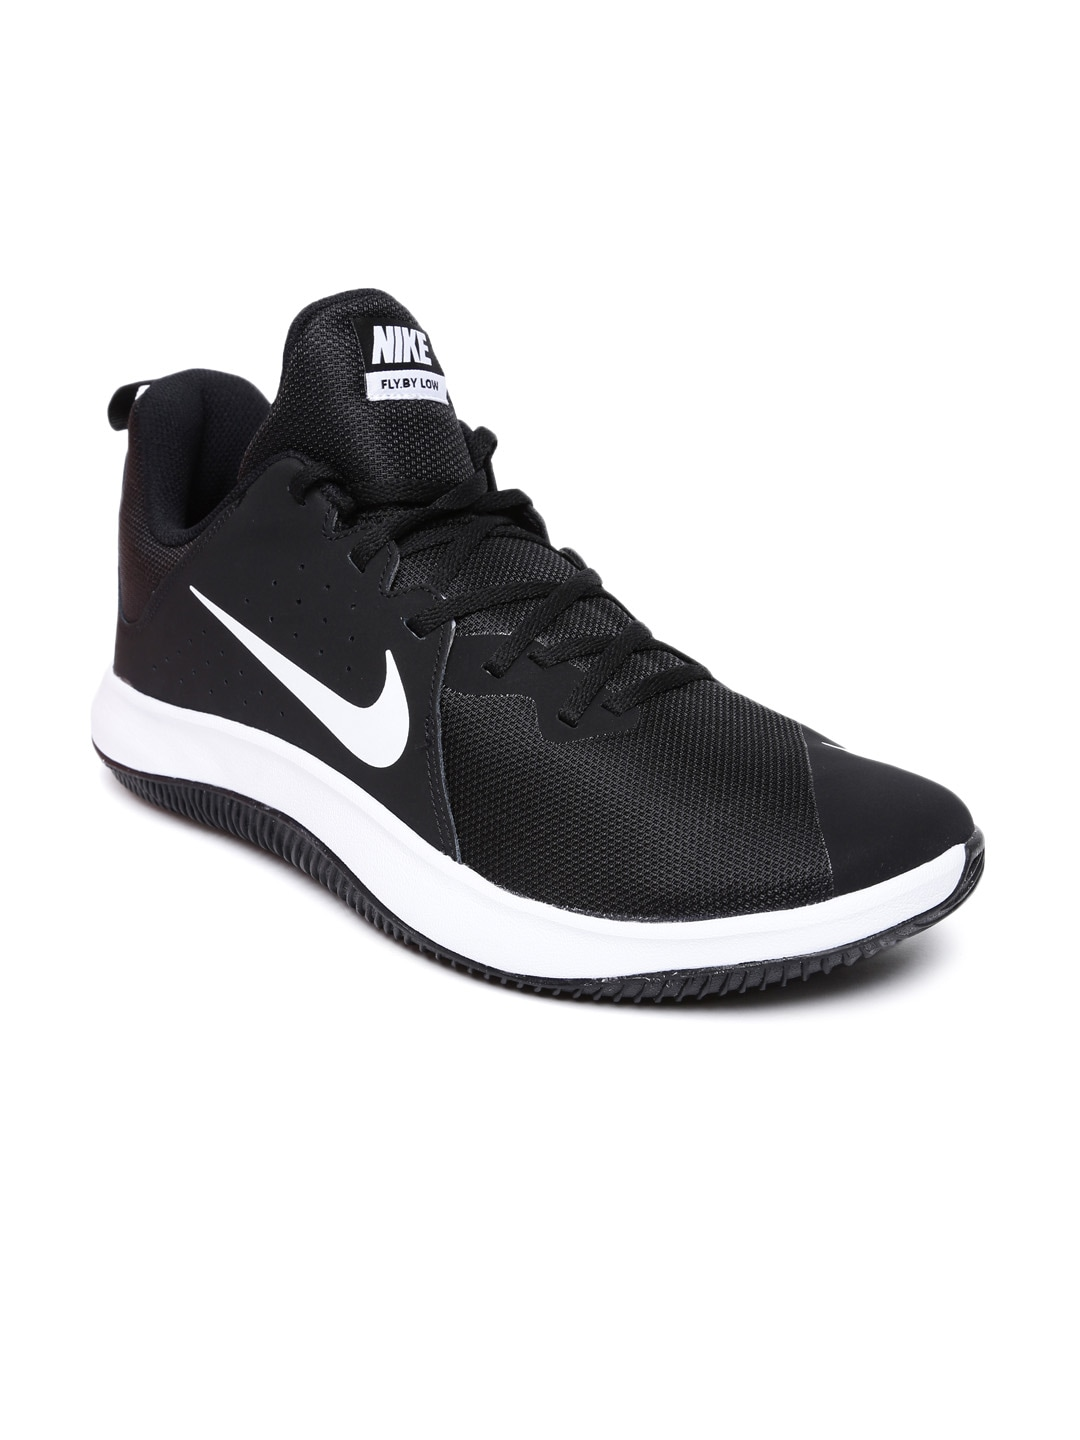 1ace35ac5d4c Nike Shoes - Buy Nike Shoes for Men